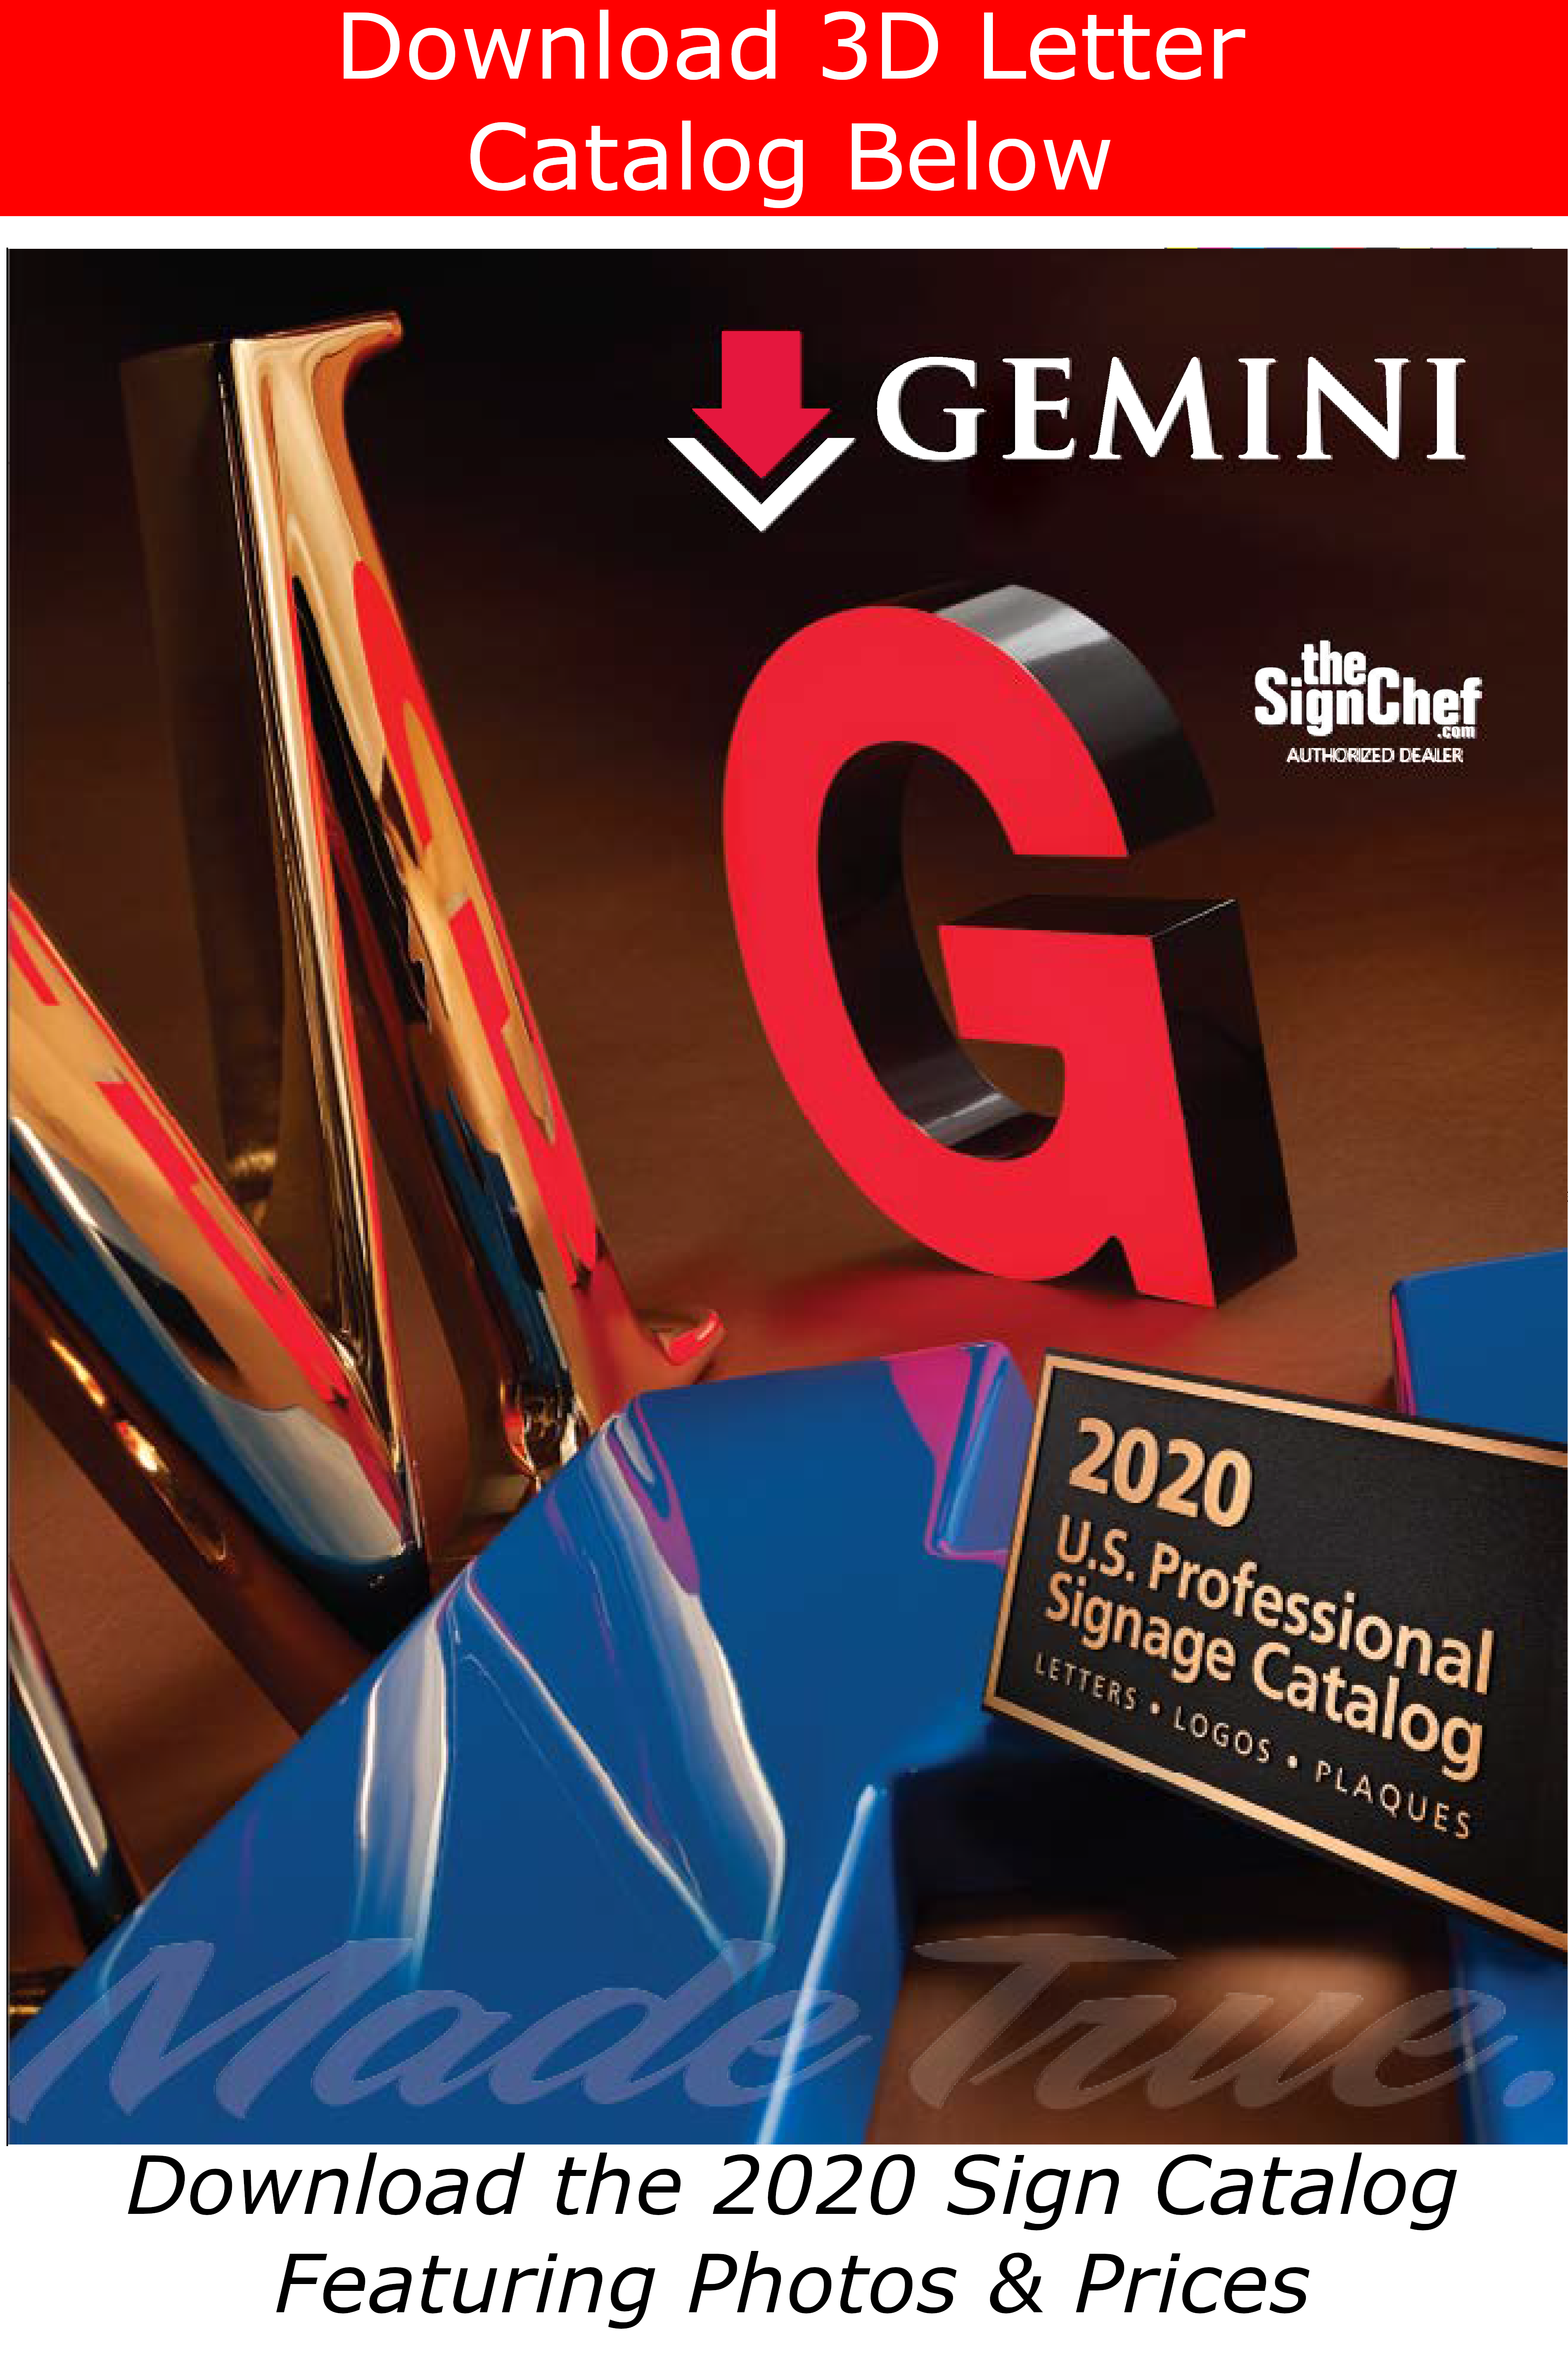 Download your 2020 Pricing Catalog